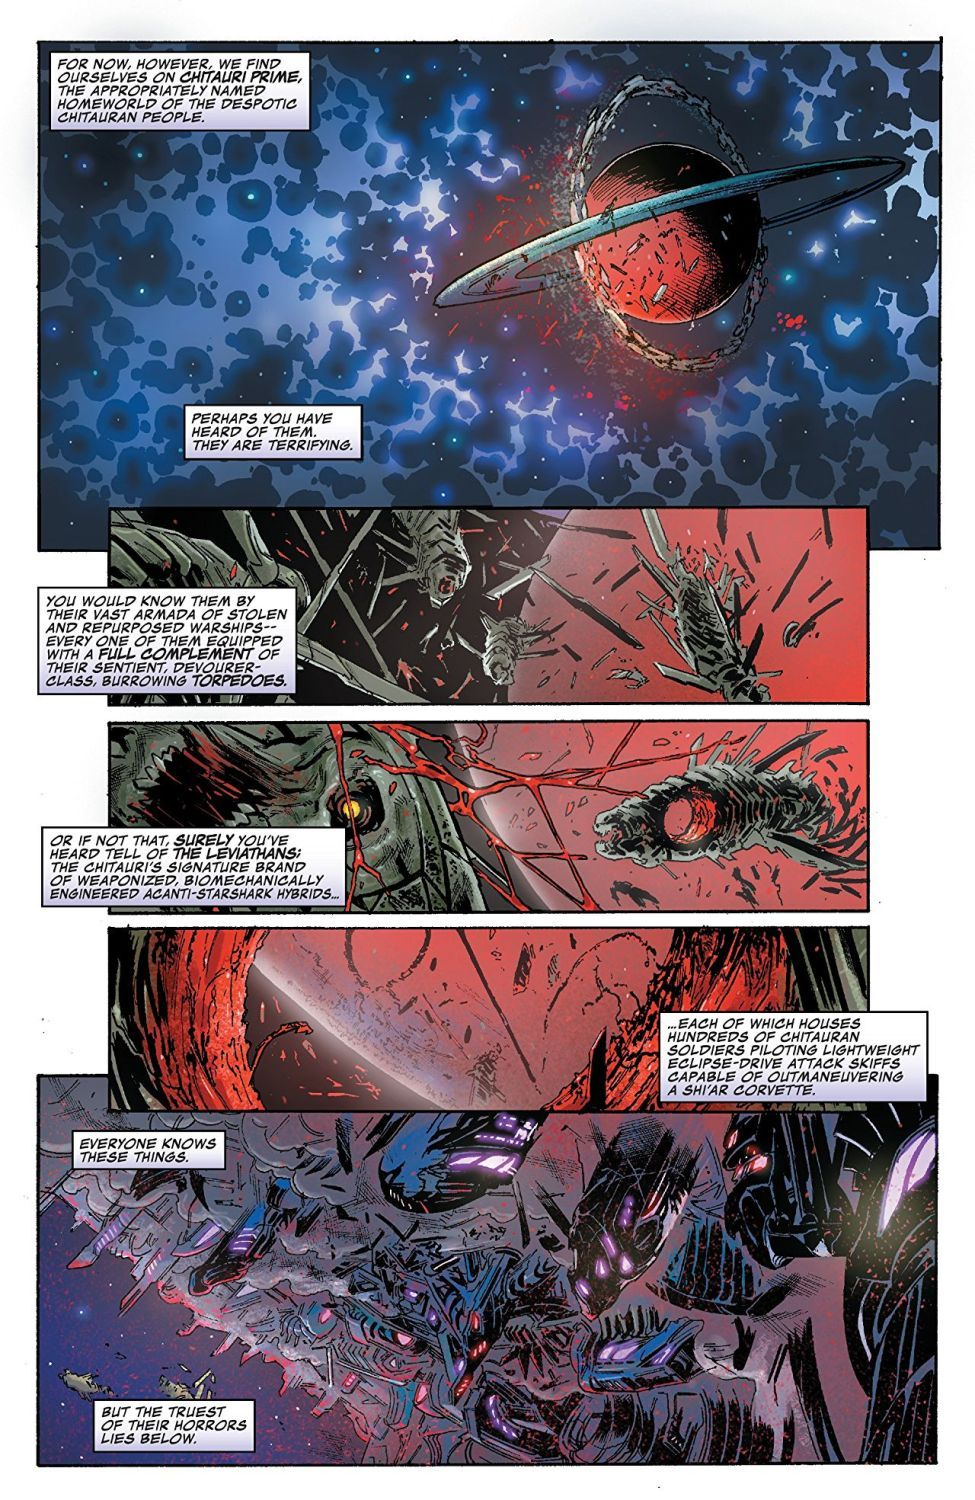 Thanos Wins by Donny Cates-1 - 2